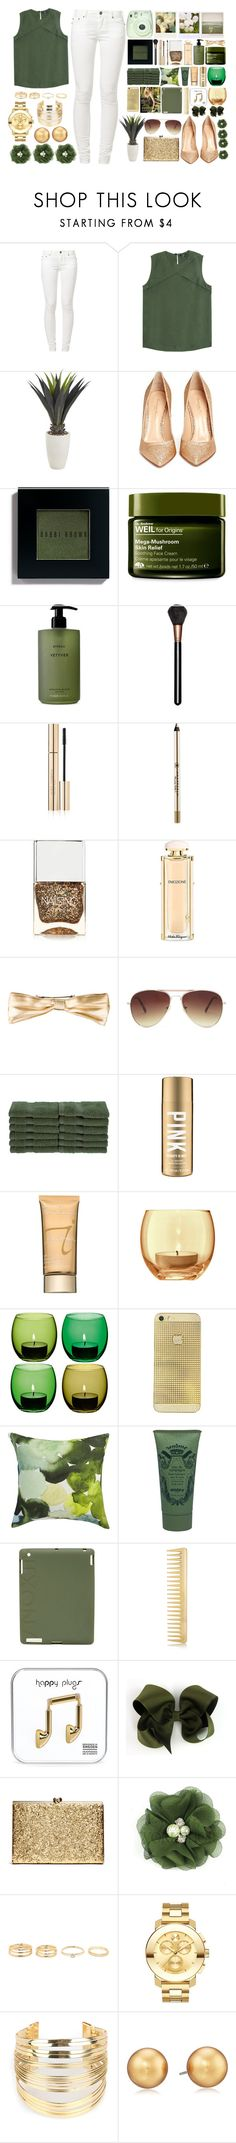 """""""Green and Gold"""" by pretima ❤ liked on Polyvore featuring Best Mountain, Raoul, Pier 1 Imports, Polaroid, Gianvito Rossi, Bobbi Brown Cosmetics, Origins, Byredo, MAC Cosmetics and Dolce&Gabbana"""